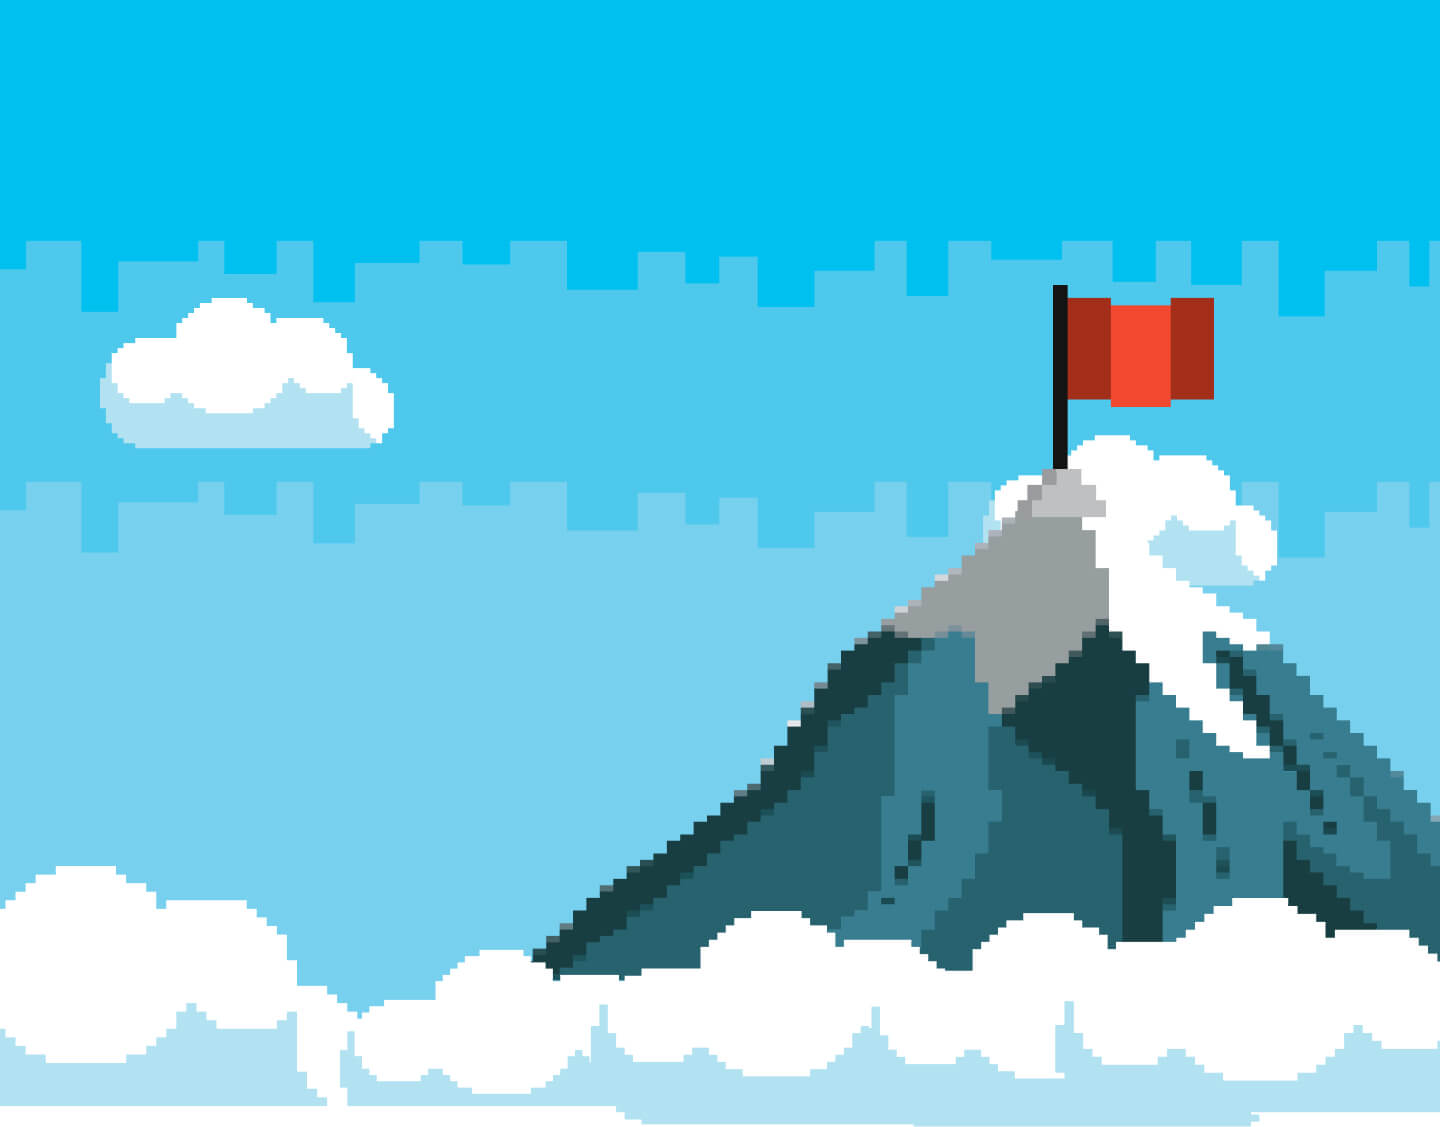 Illustration of clouds, a mountain and a red flag on top of the mountain